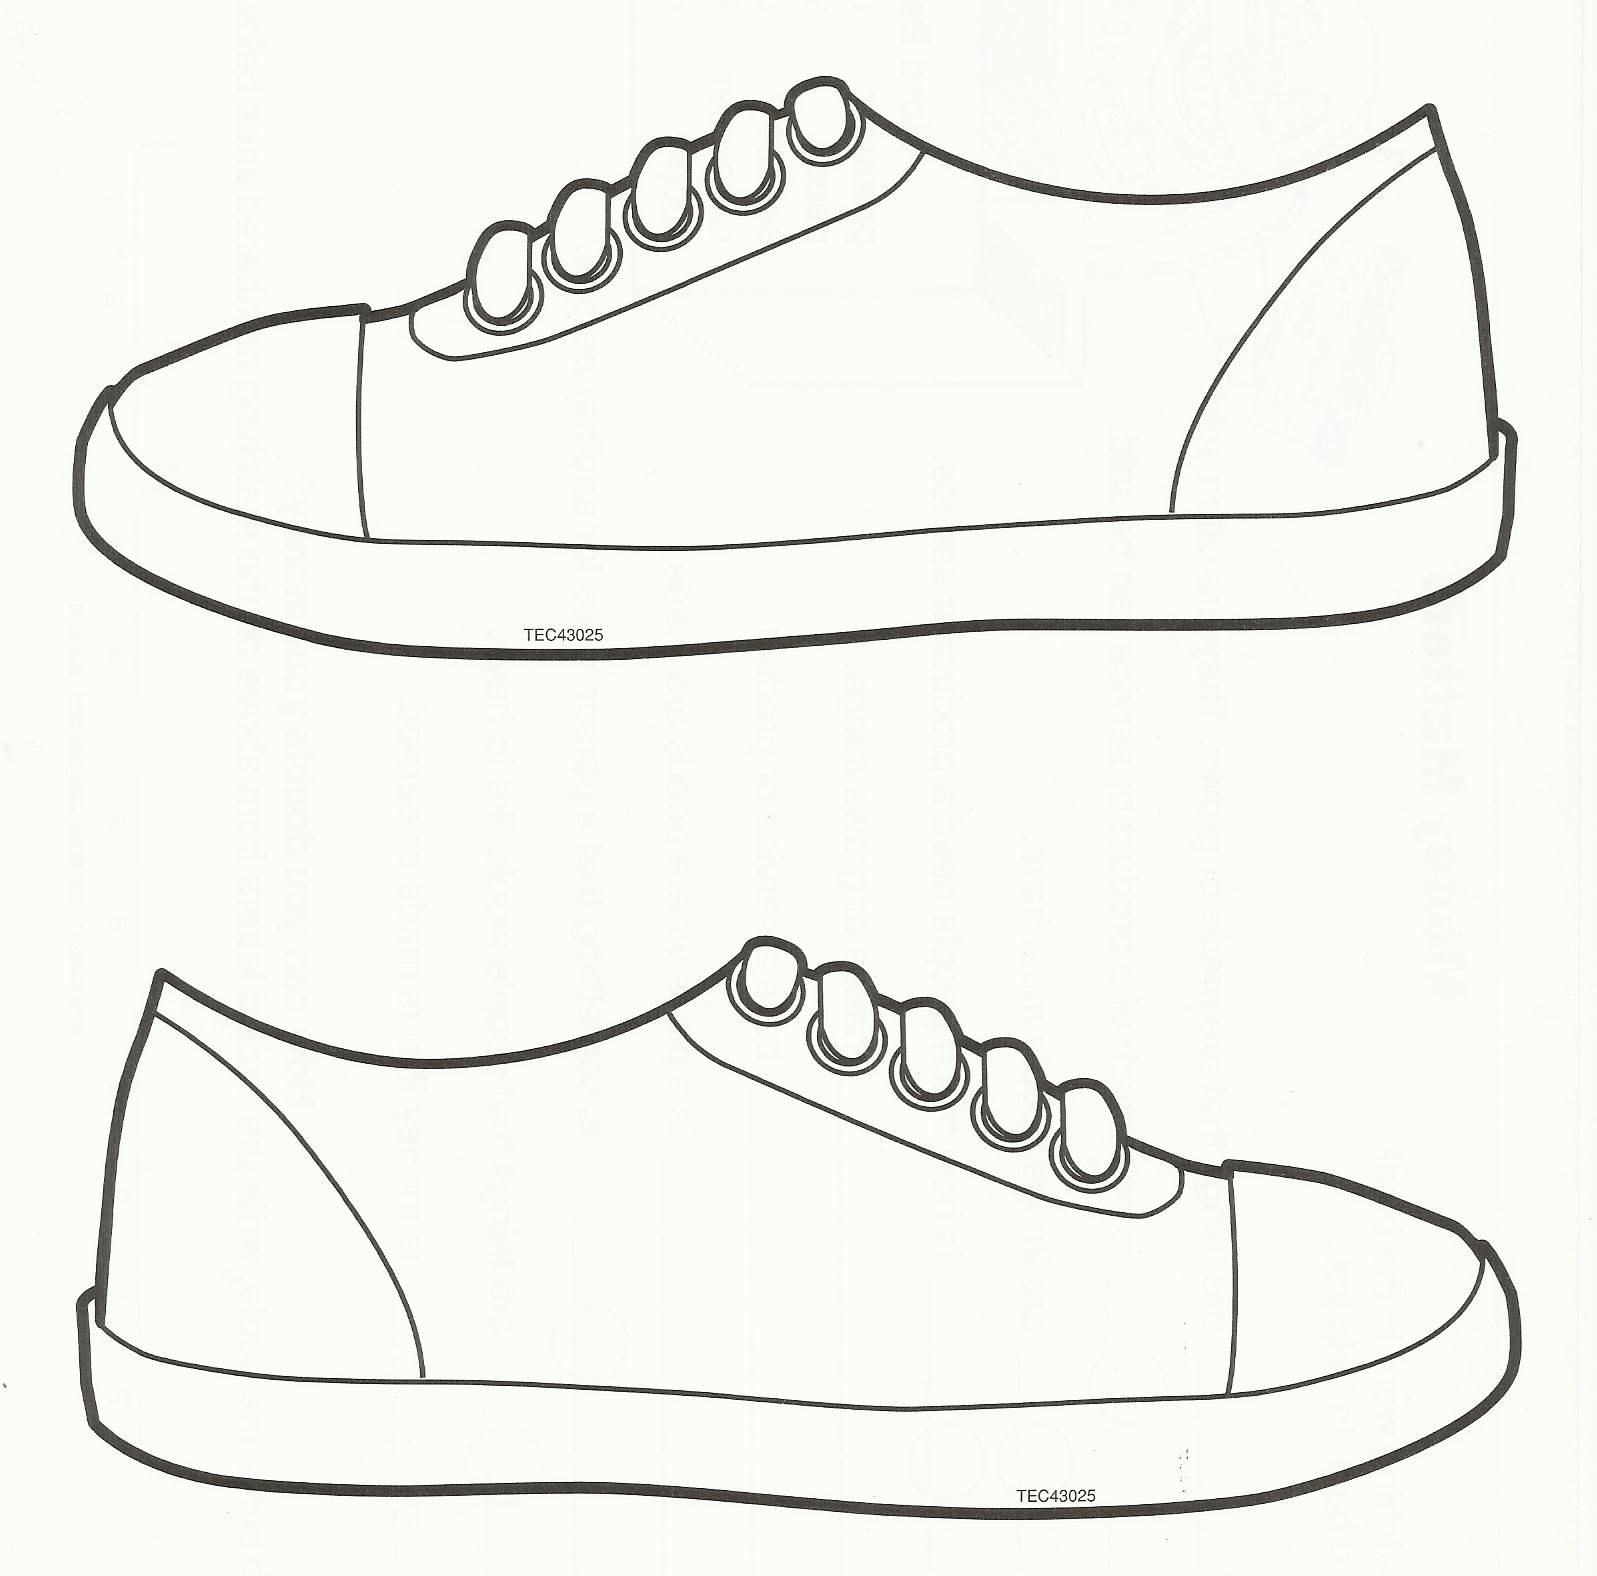 Coloring pages for jordans - Squish Preschool Ideas Sneaker Art For Pete The Cat